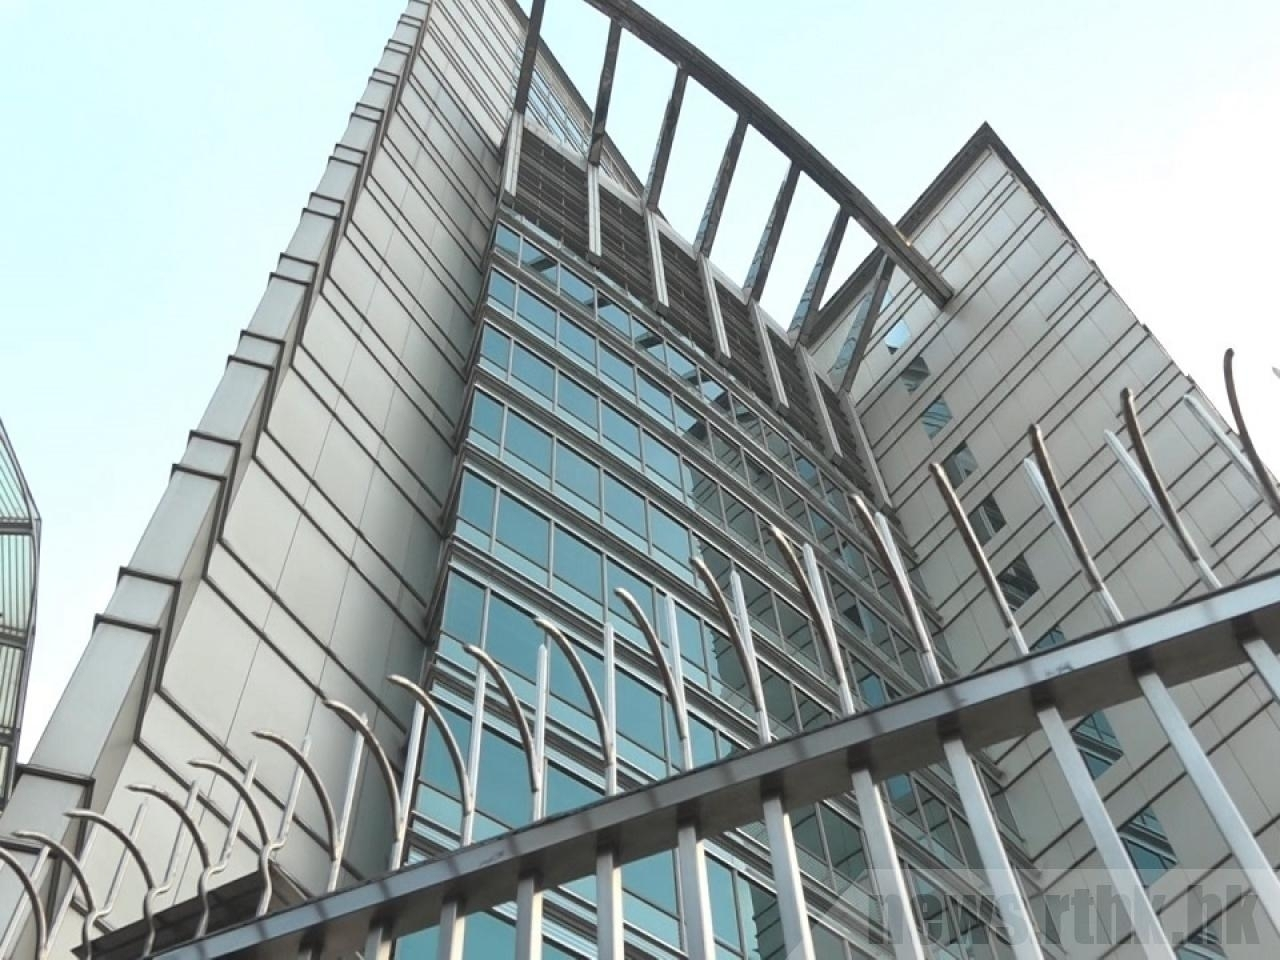 The Foreign Ministry's Office in Hong Kong says any foreign intervention and pressure on Hong Kong is destined to be futile. File photo: RTHK